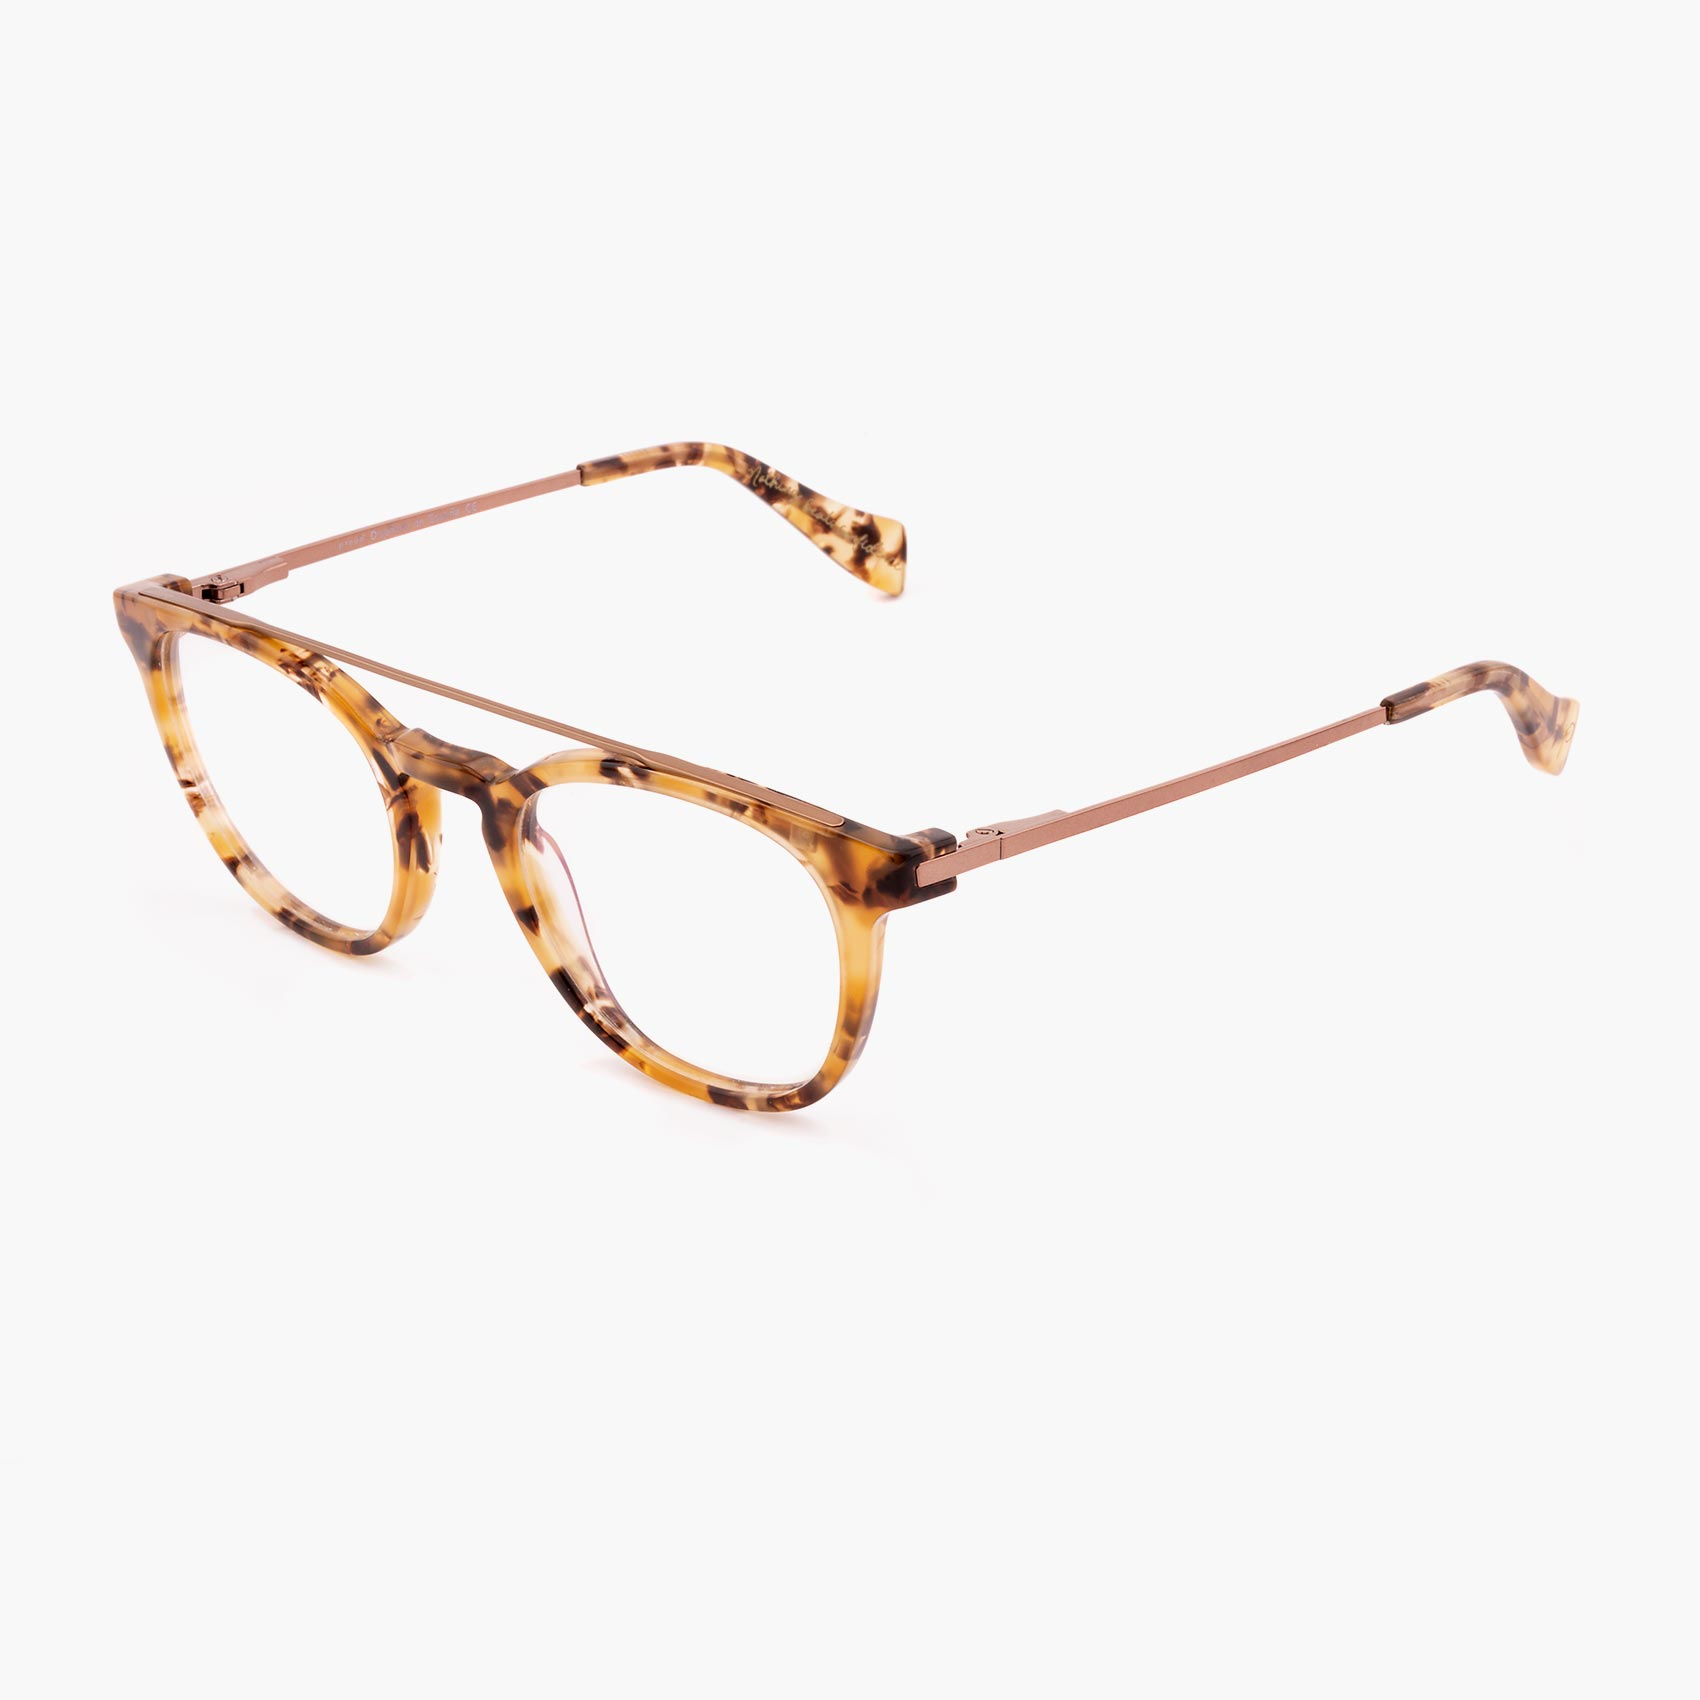 Proud eyewear Hilary C3 P gafas de vista puente doble